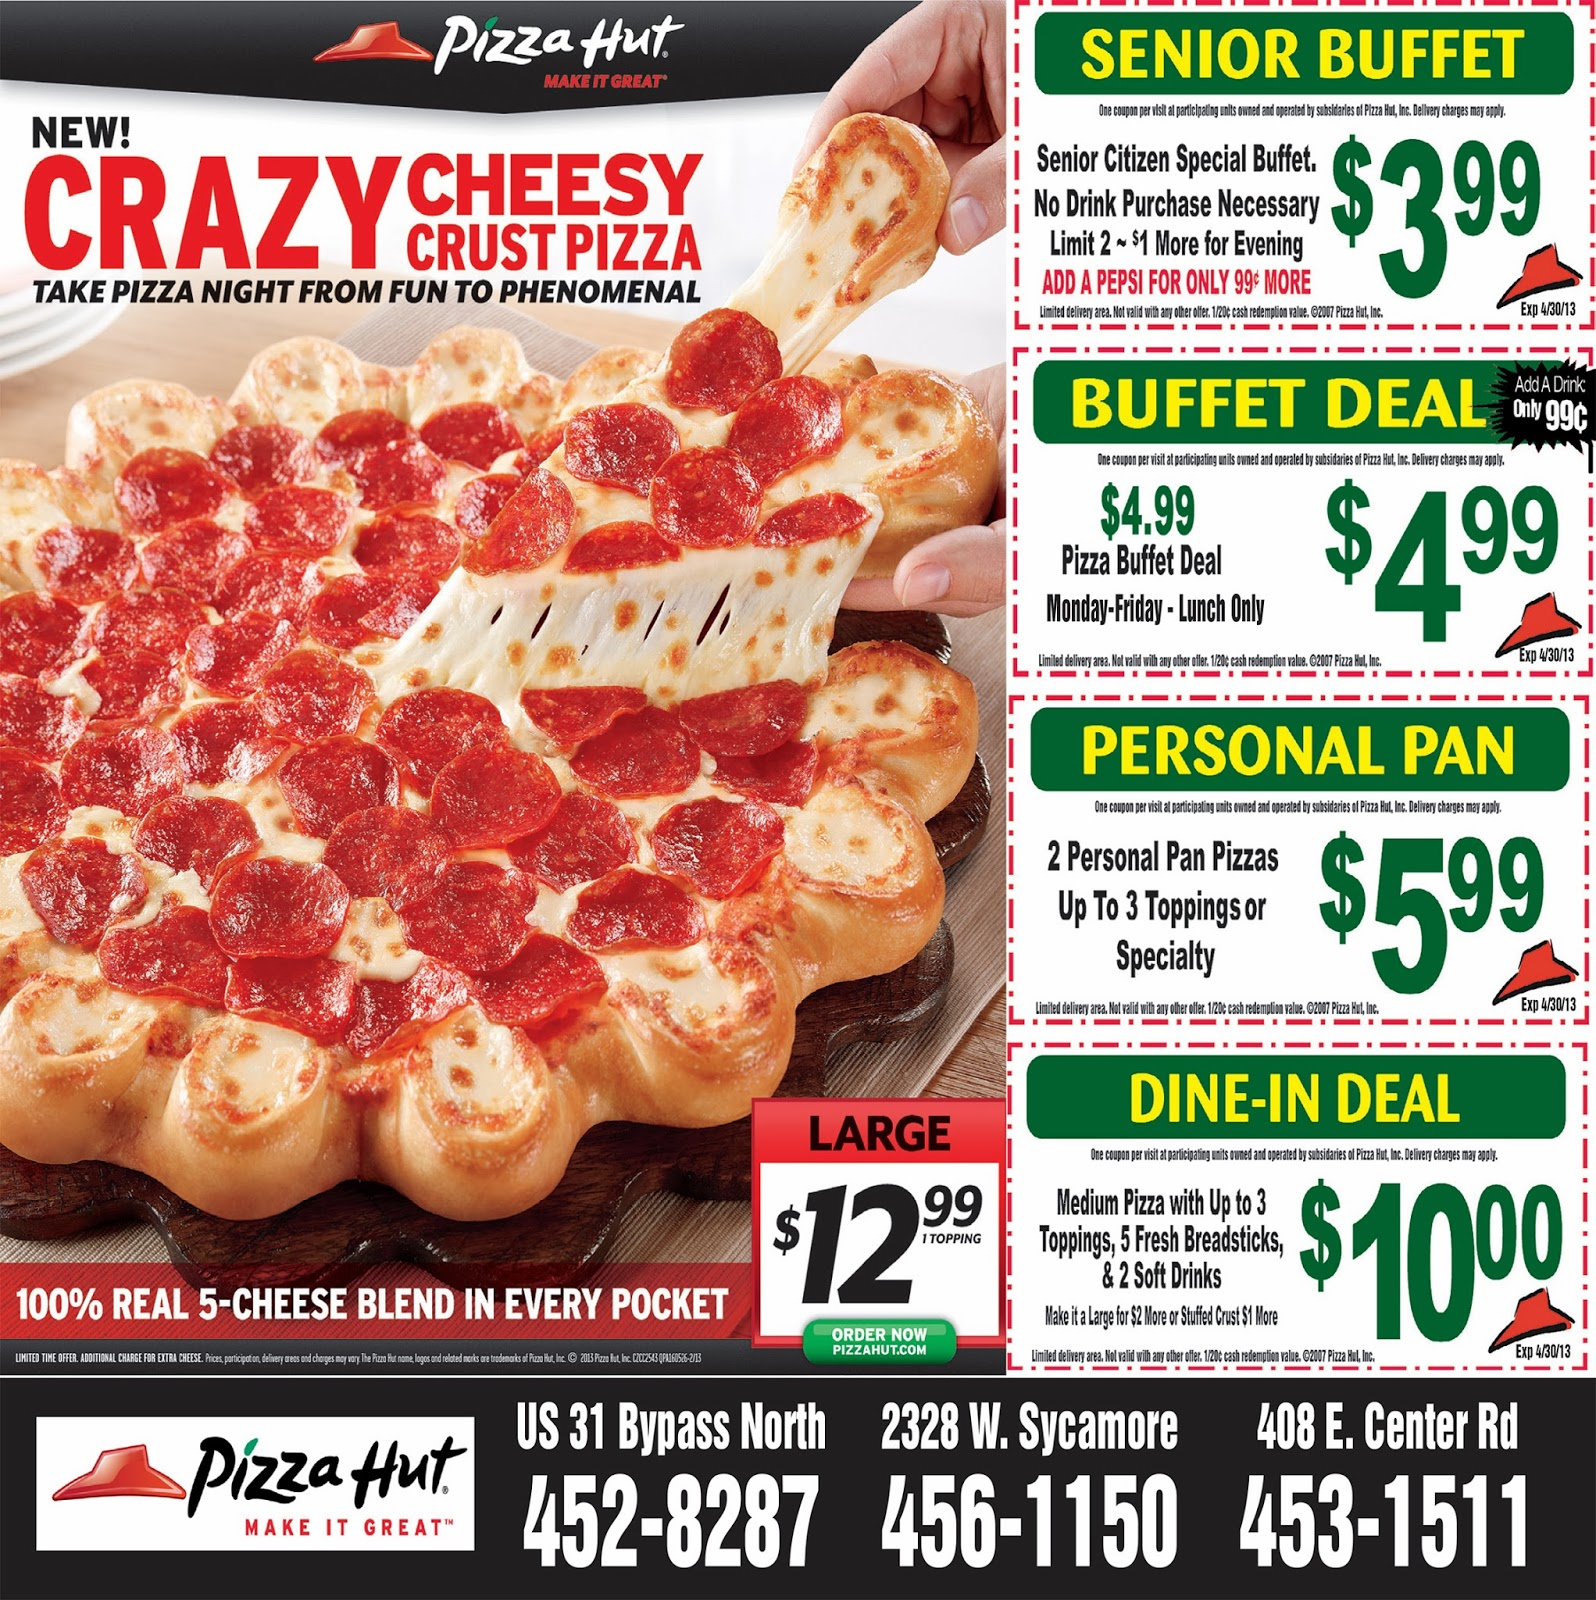 Happy's pizza coupon code